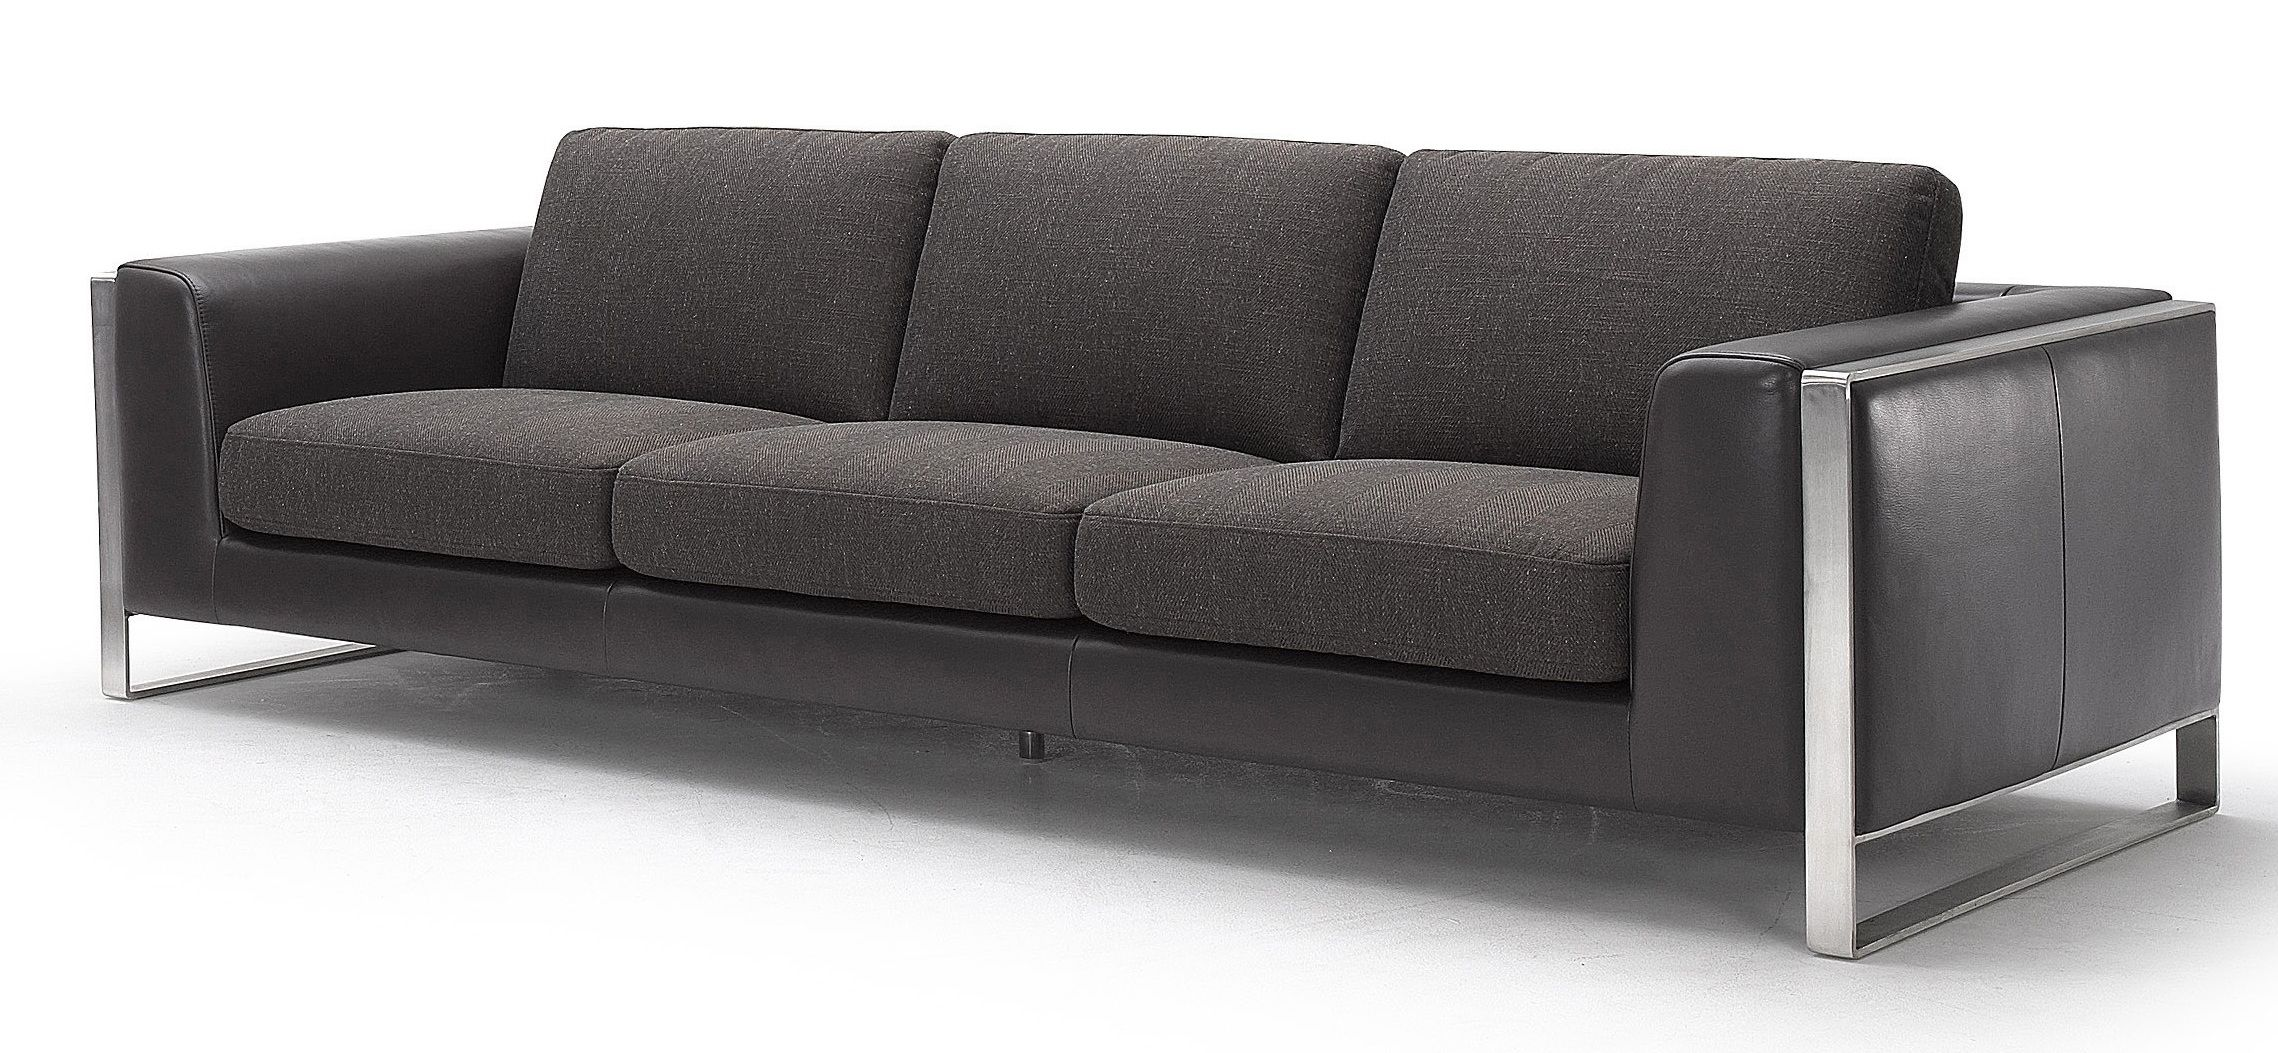 home furniture improvement with contemporary sofa  huzname  - home furniture improvement with contemporary sofa  huzname